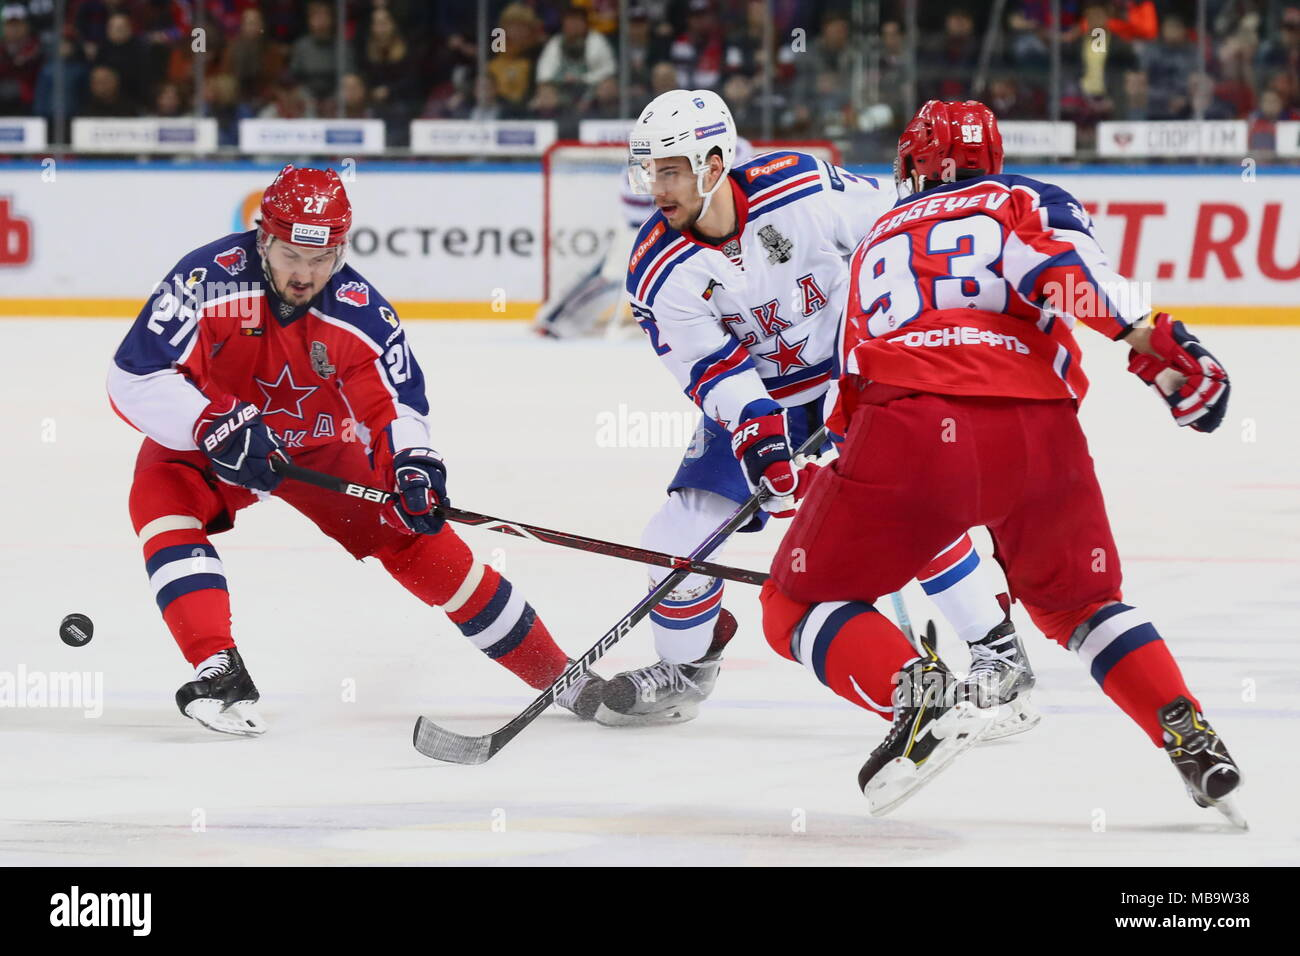 Moscow, Russia. 08th Apr, 2018. MOSCOW, RUSSIA - APRIL 8, 2018: CSKA Moscow's Kirill Petrov (L), Artyom Sergeyev (R) and SKA St Petersburg's Artyom Zub (C) in Game 6 of the 2017/2018 Kontinental Hockey League Western Conference final best-of-seven playoff between CSKA Moscow and SKA St Petersburg at CSKA Arena; CSKA Moscow won the game 3 - 2. Stanislav Krasilnikov/TASS Credit: ITAR-TASS News Agency/Alamy Live News - Stock Image